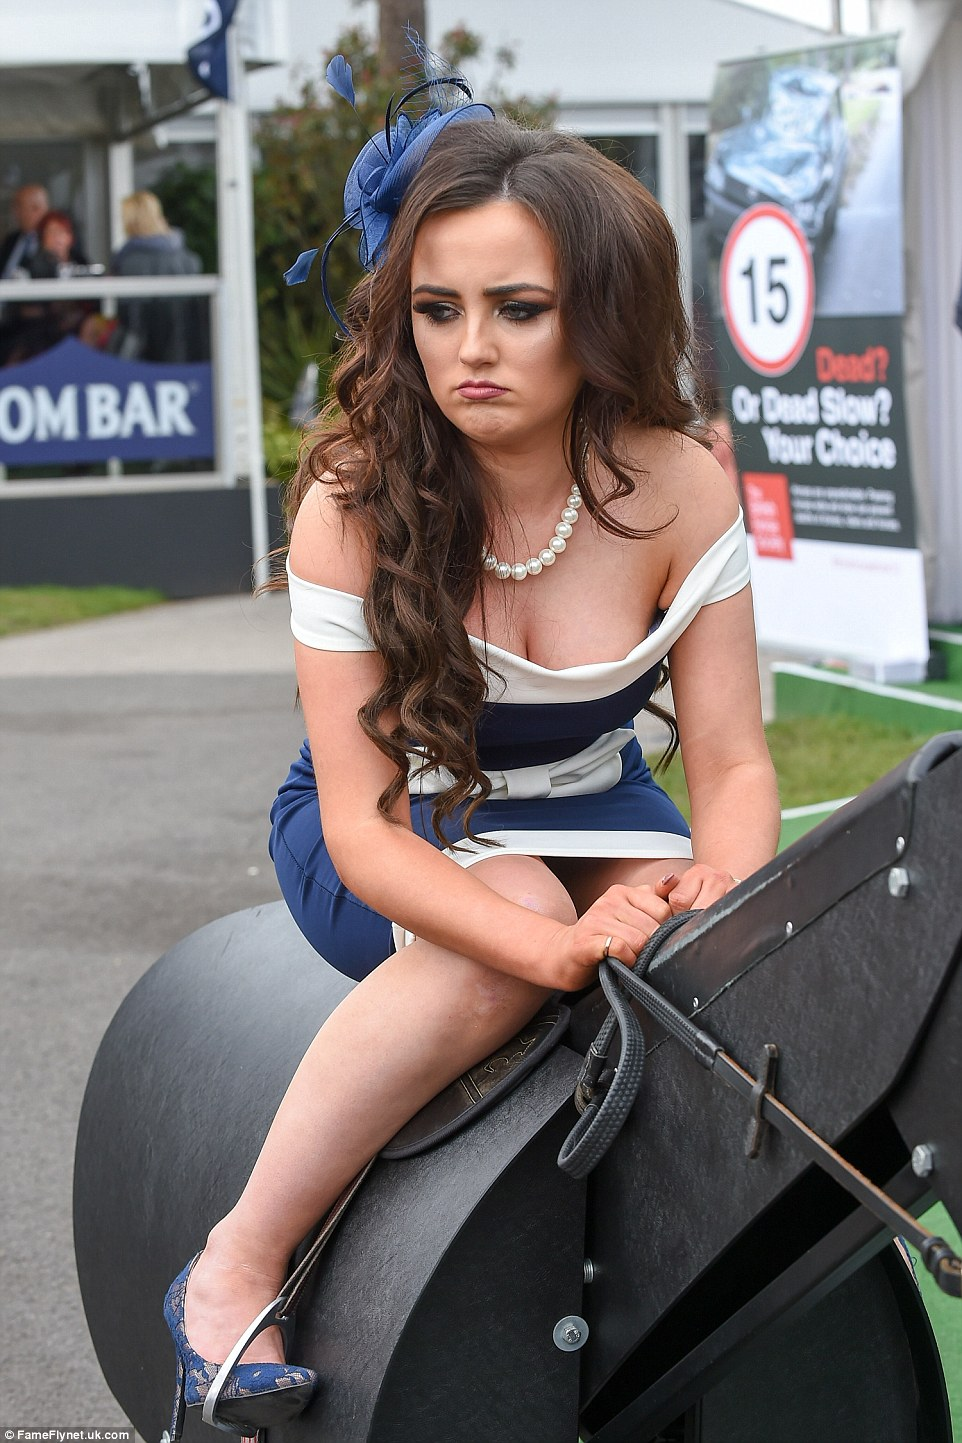 A woman looked slightly disgruntled as she did her best jockey impression on a mechanical horse